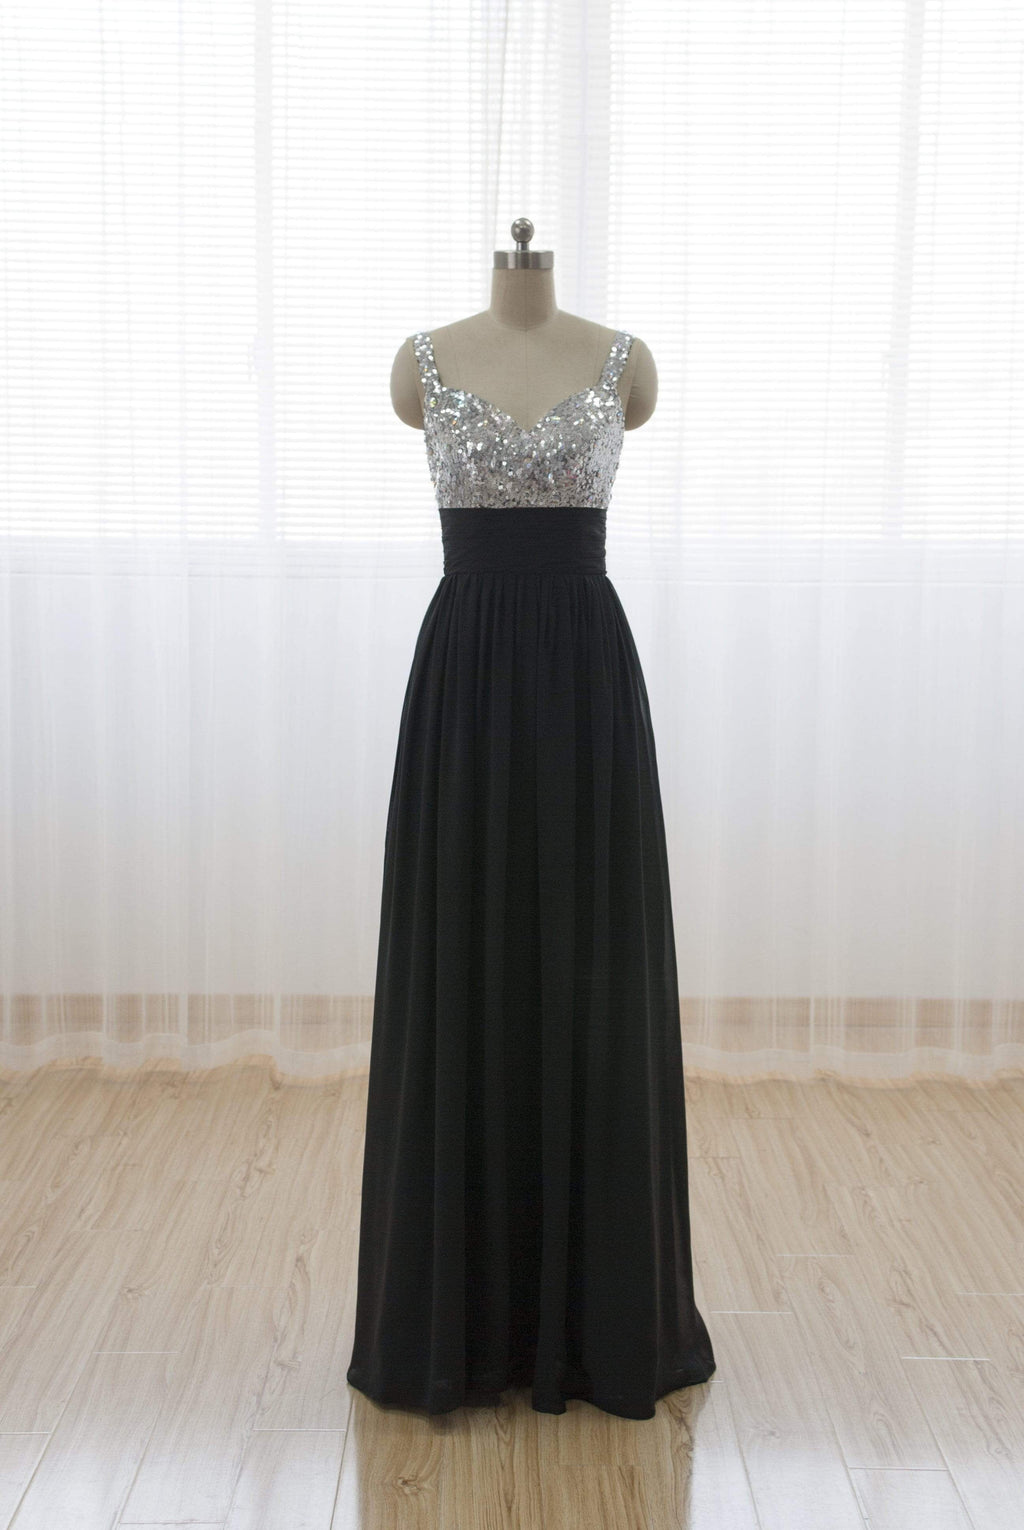 Sweetheart Sleeveless Long Prom Dresses Chiffon A Line Bridesmaid Dresses